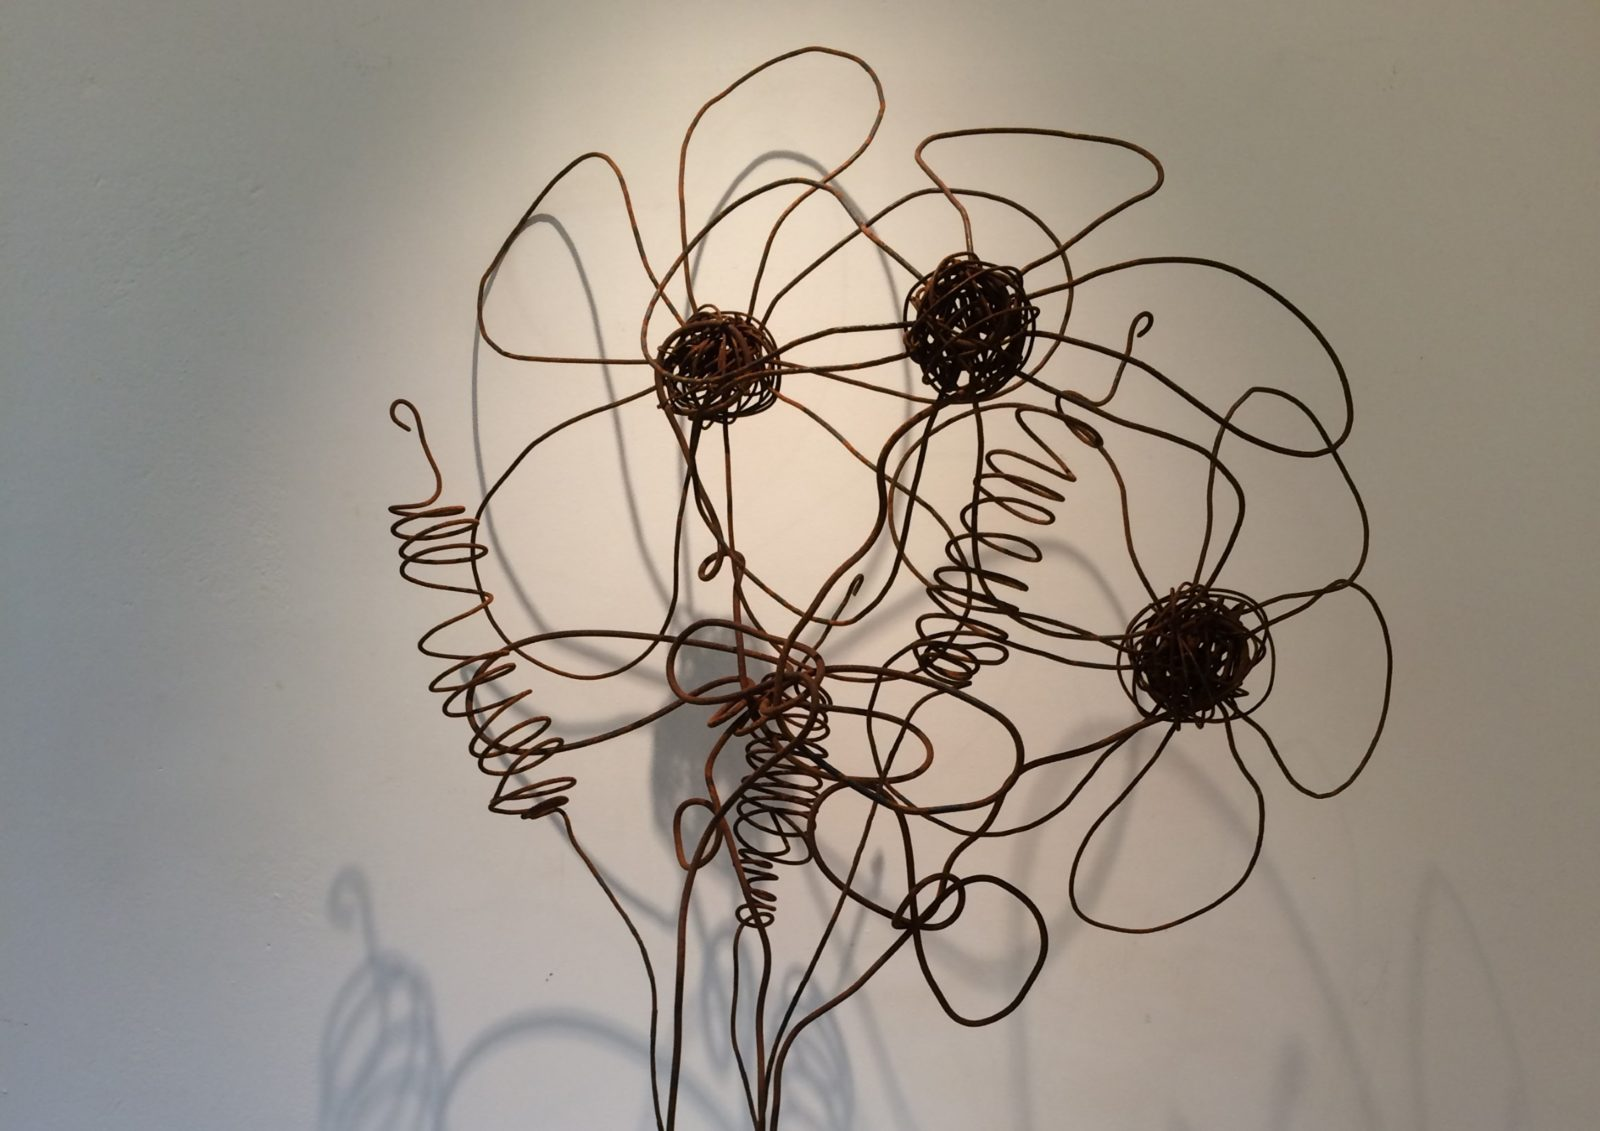 Daisies sculpted out of wire by Leanne Kelly